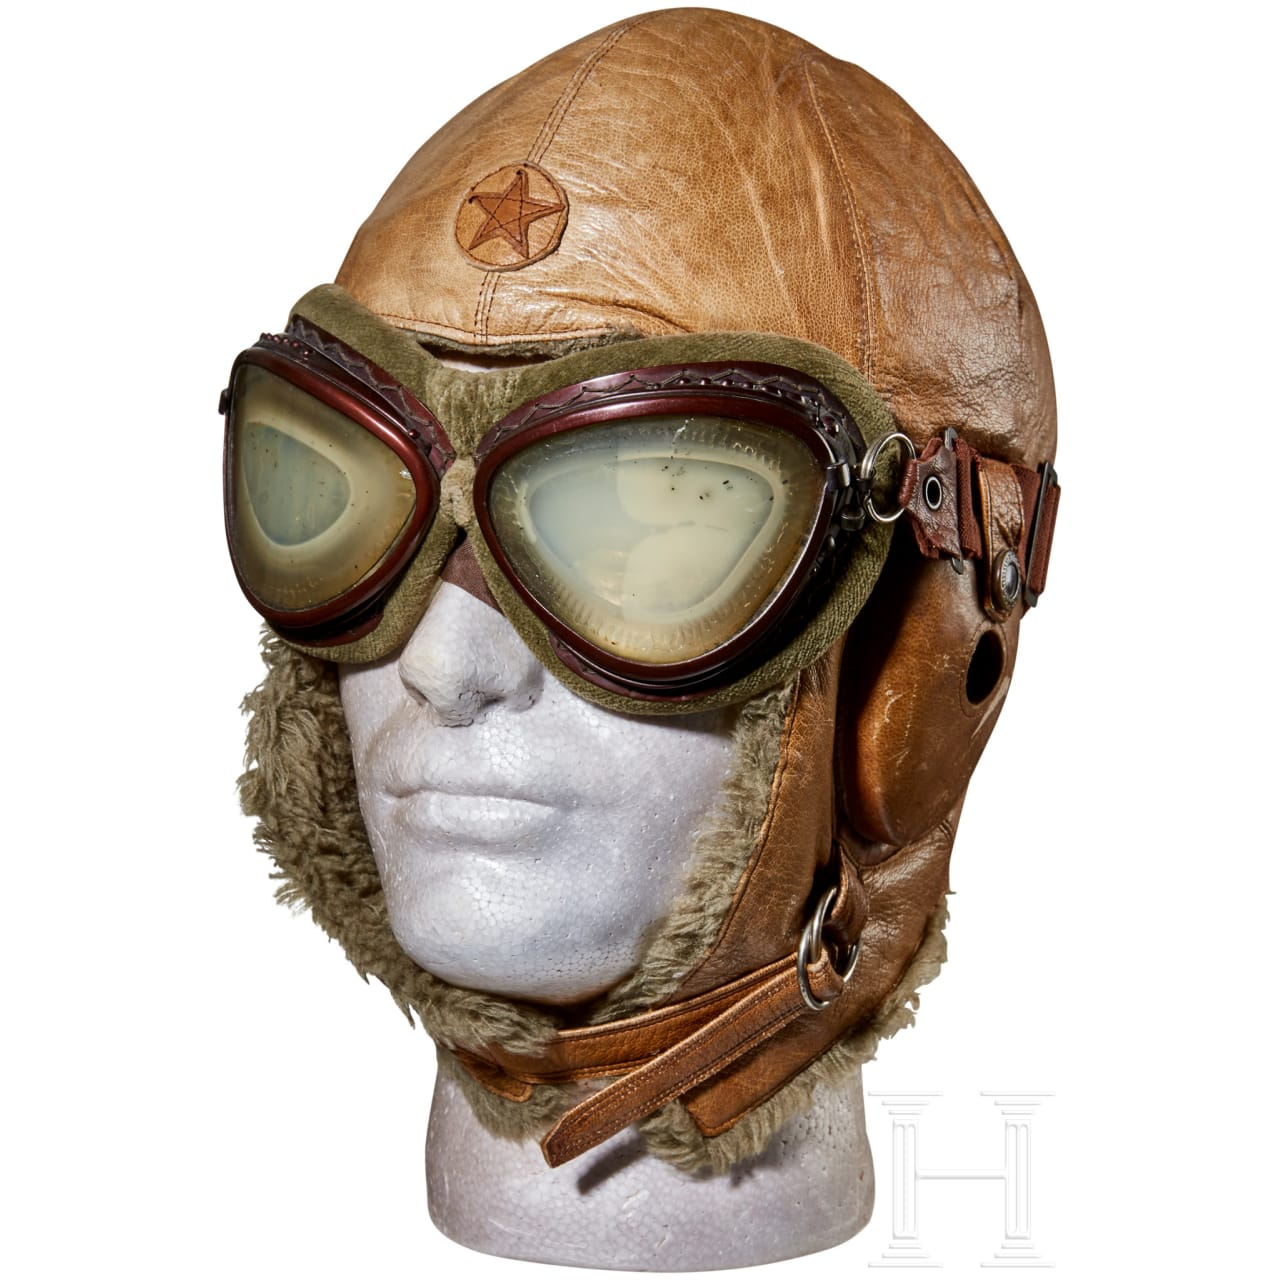 A Japanese Pilot Flight Helmet and Goggles